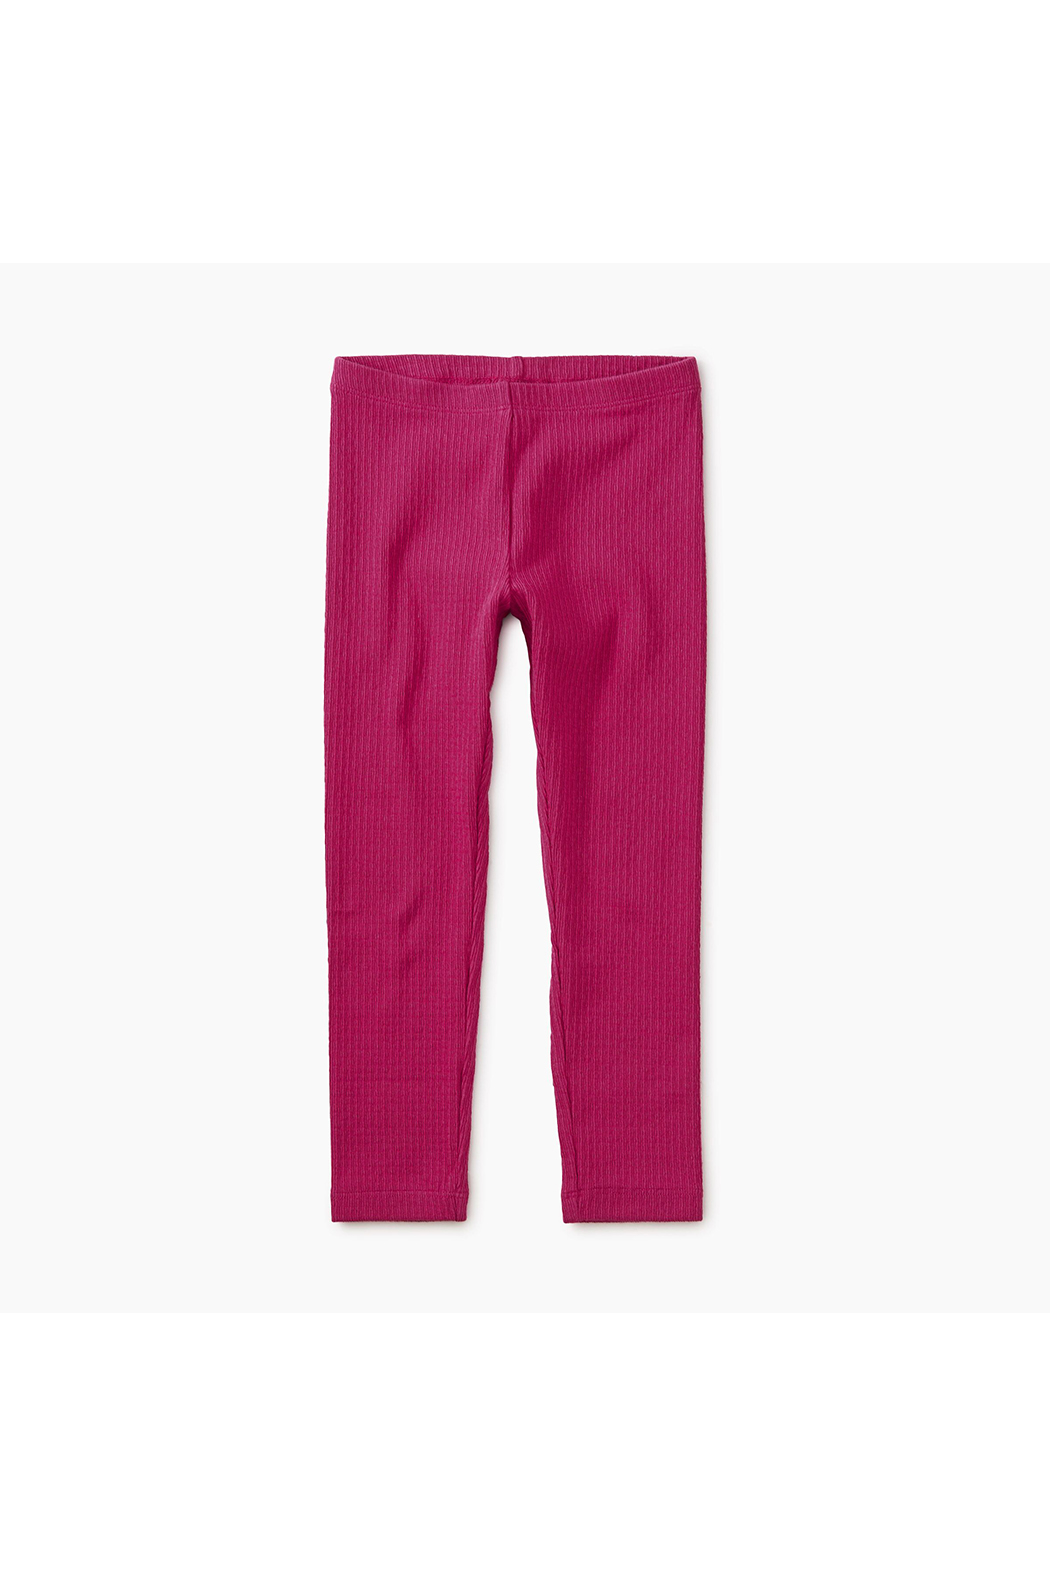 Tea Collection Pointelle Baby Leggings - Front Cropped Image